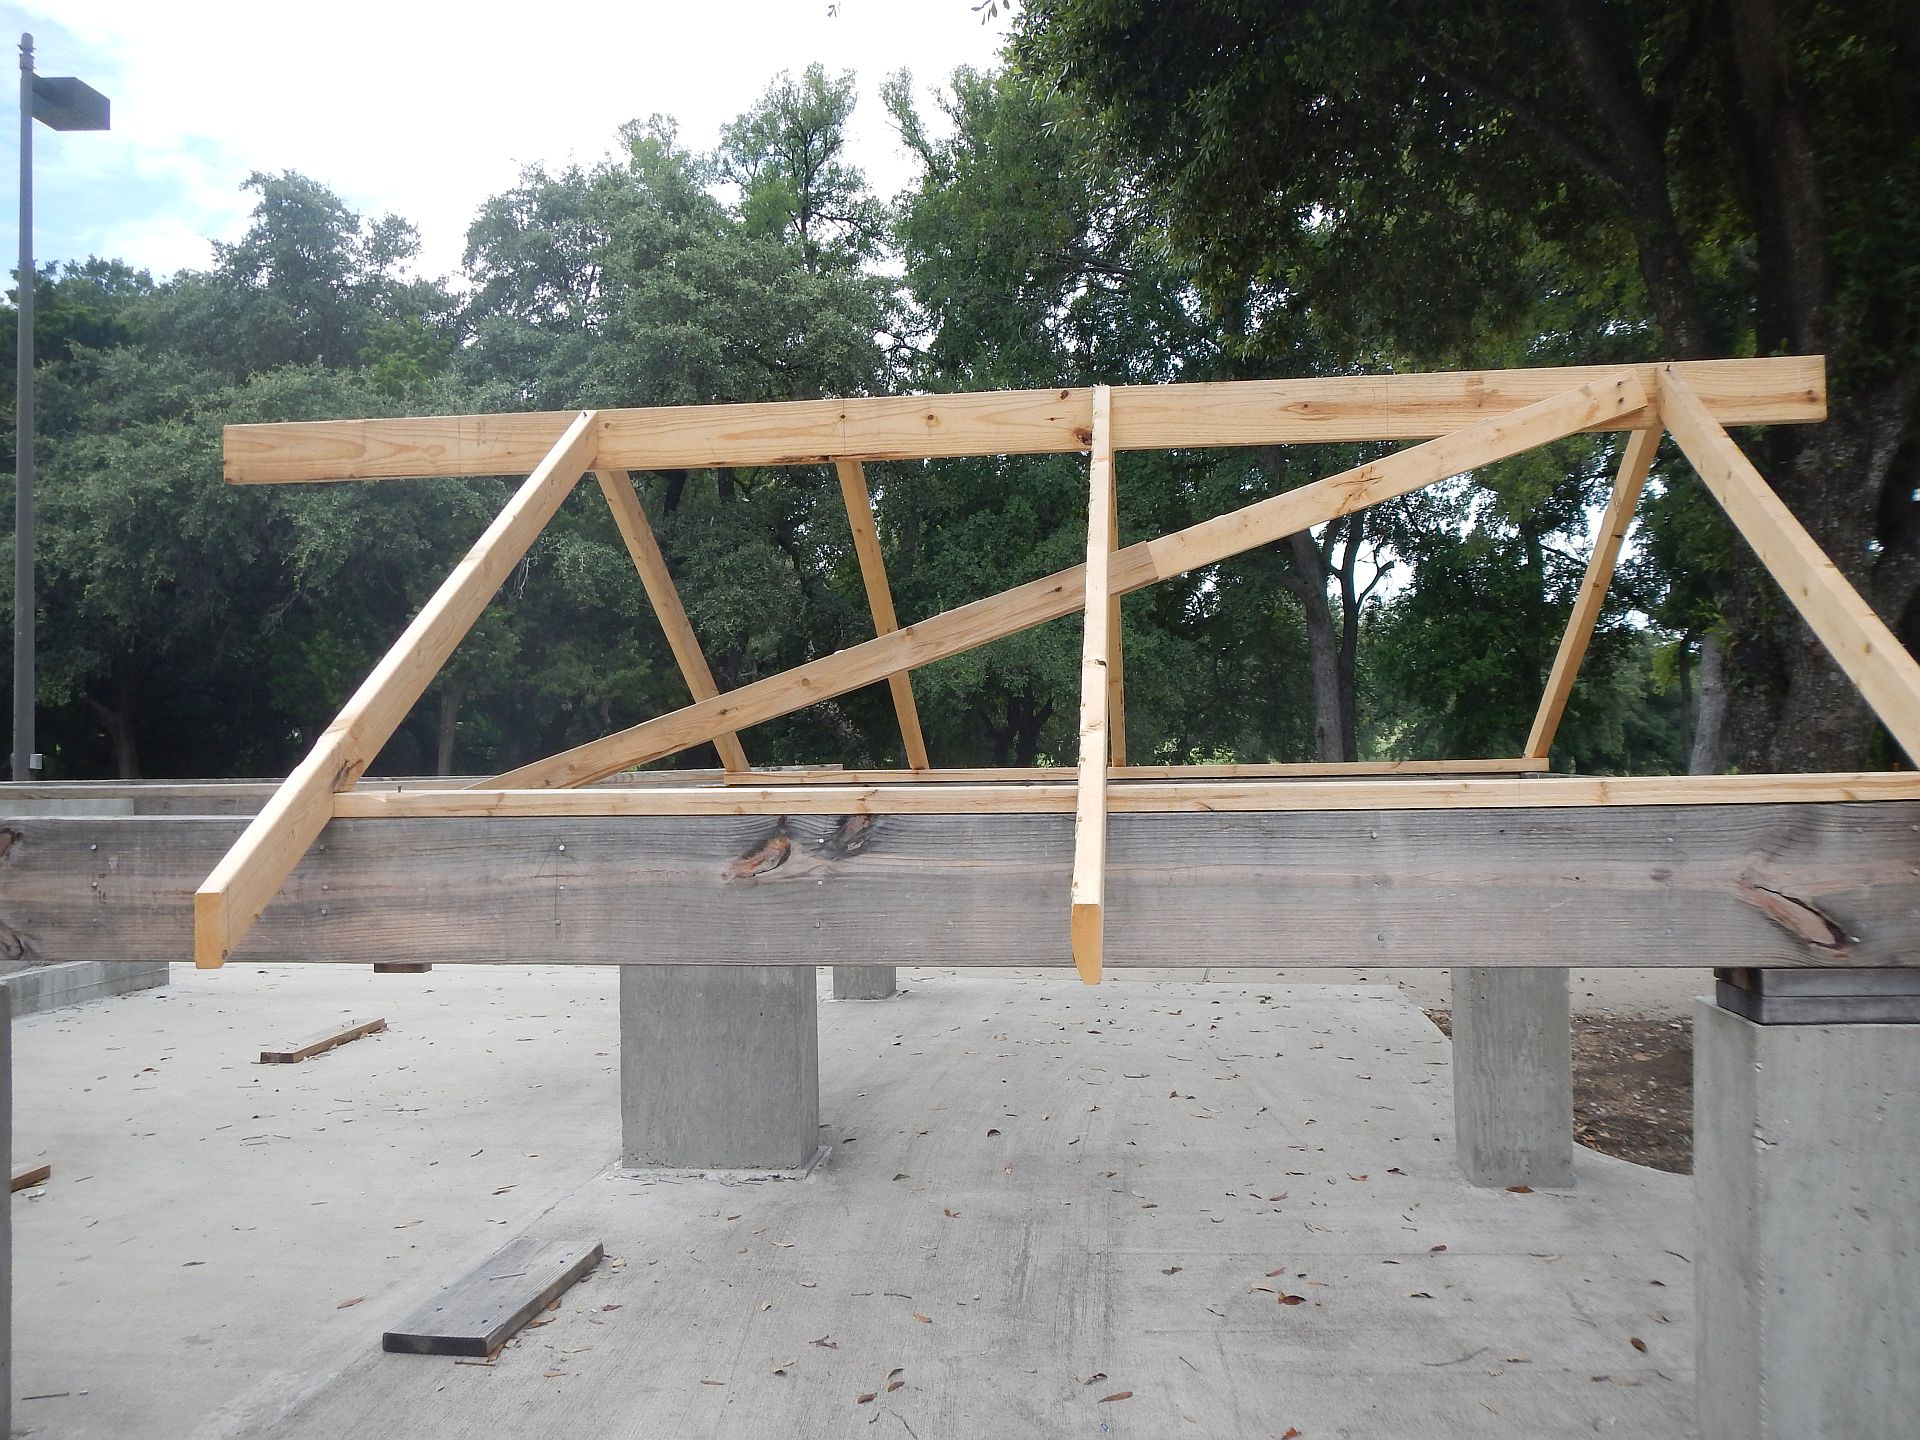 beginning of a roof frame